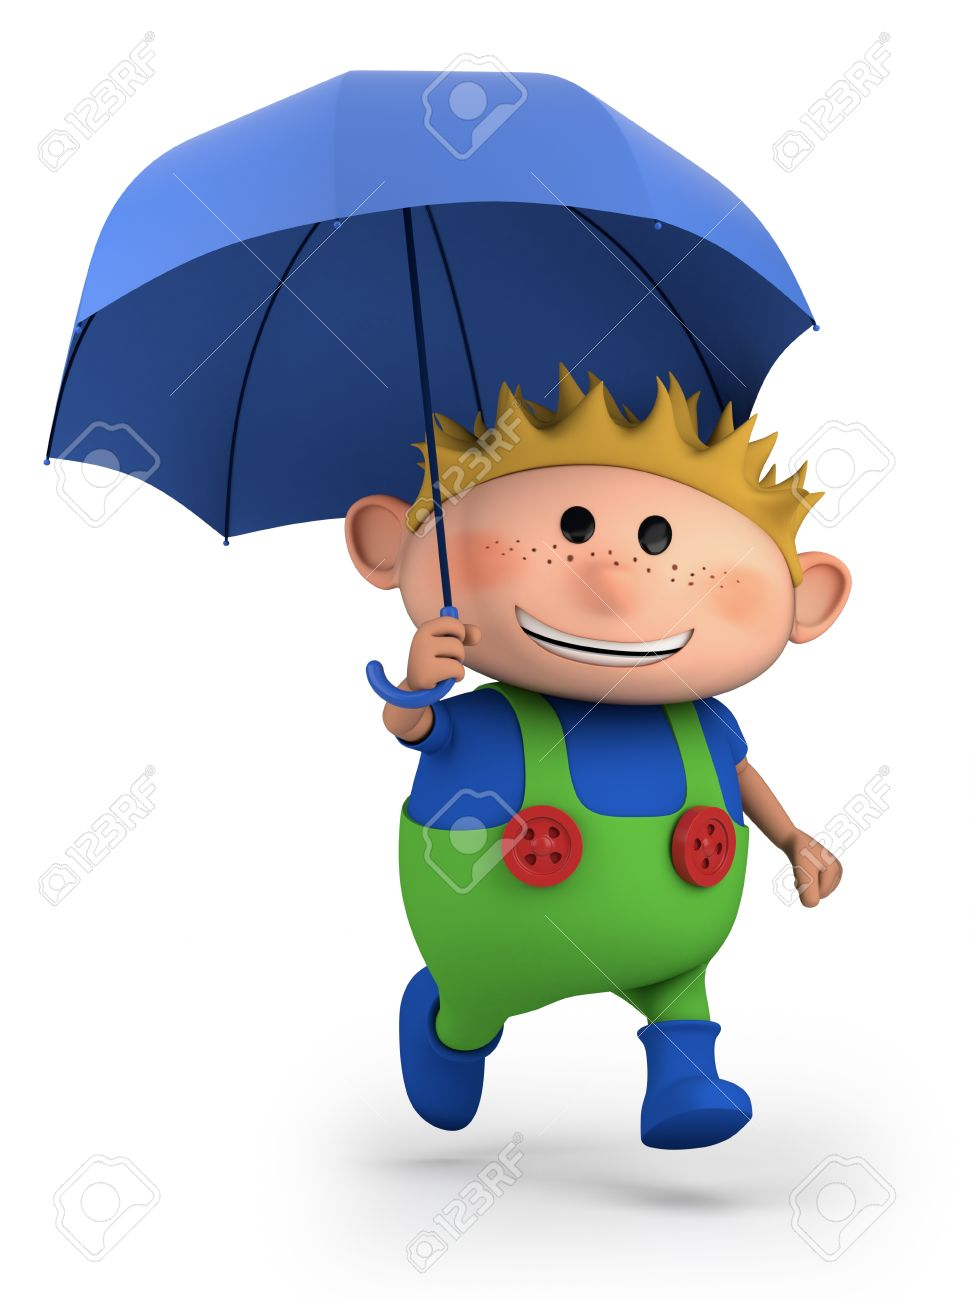 boy with umbrella high quality 3d illustration stock photo